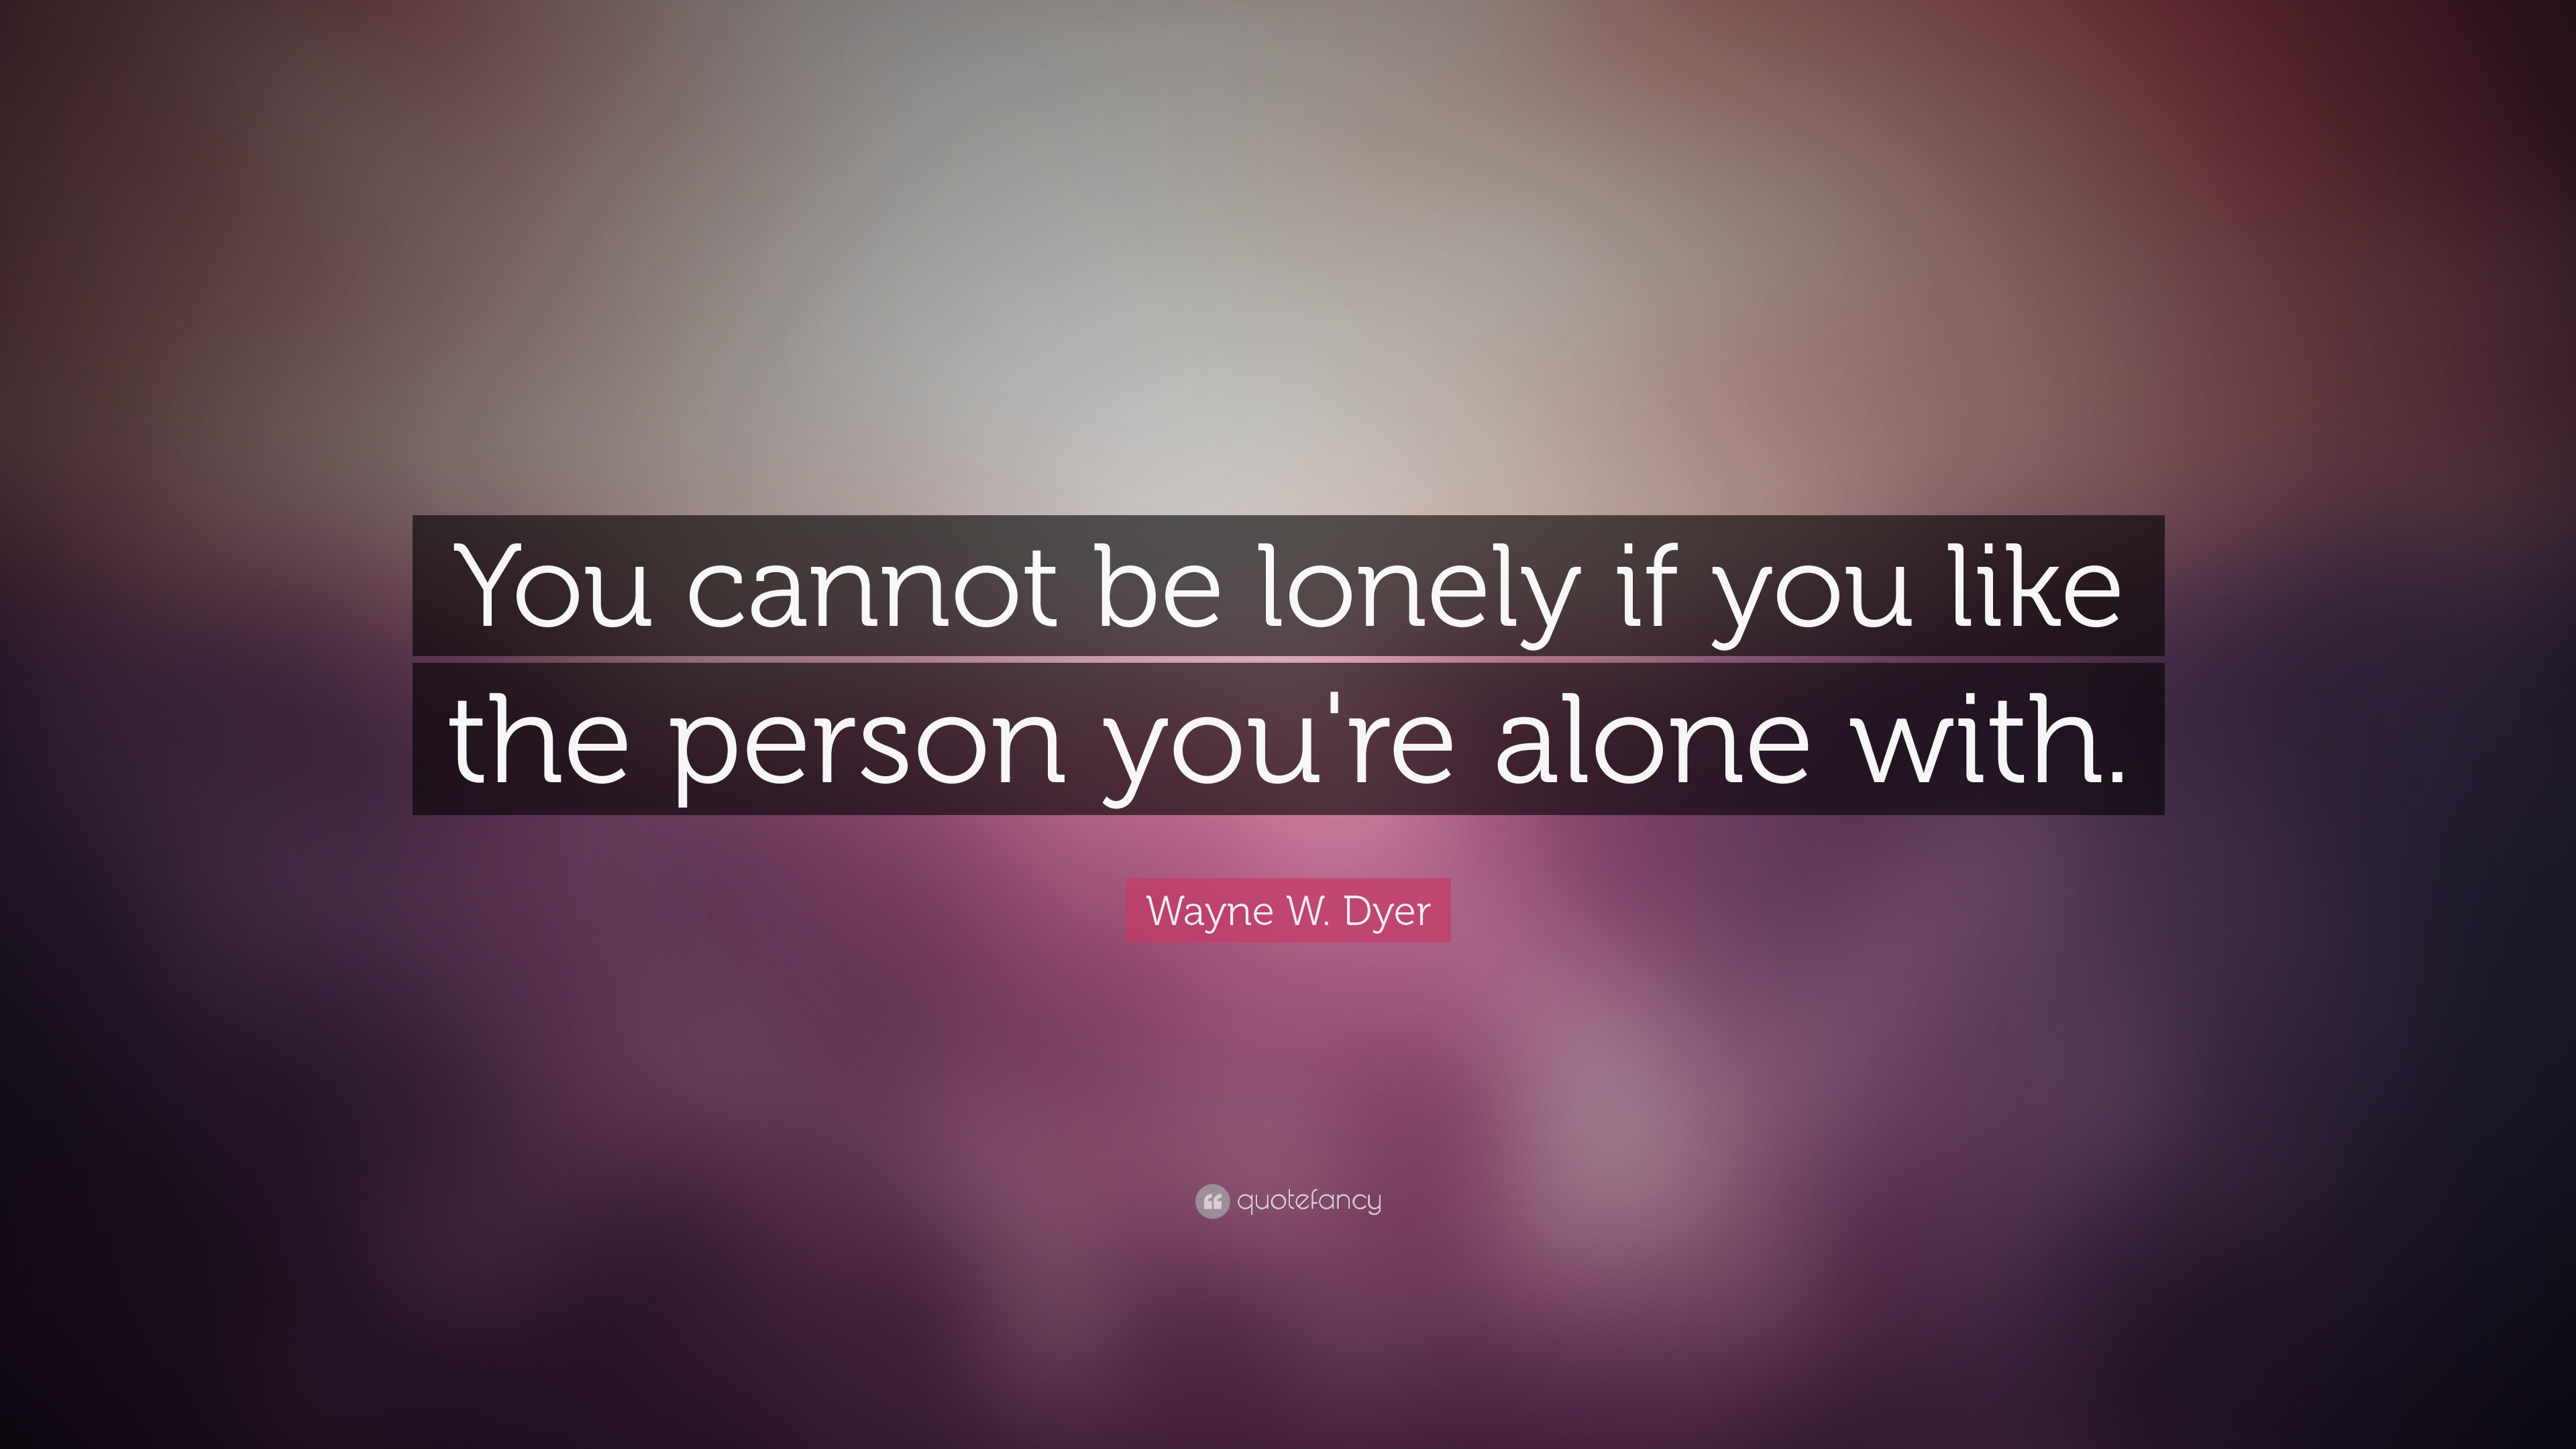 Wayne W Dyer Quote You Cannot Be Lonely If You Like The Person